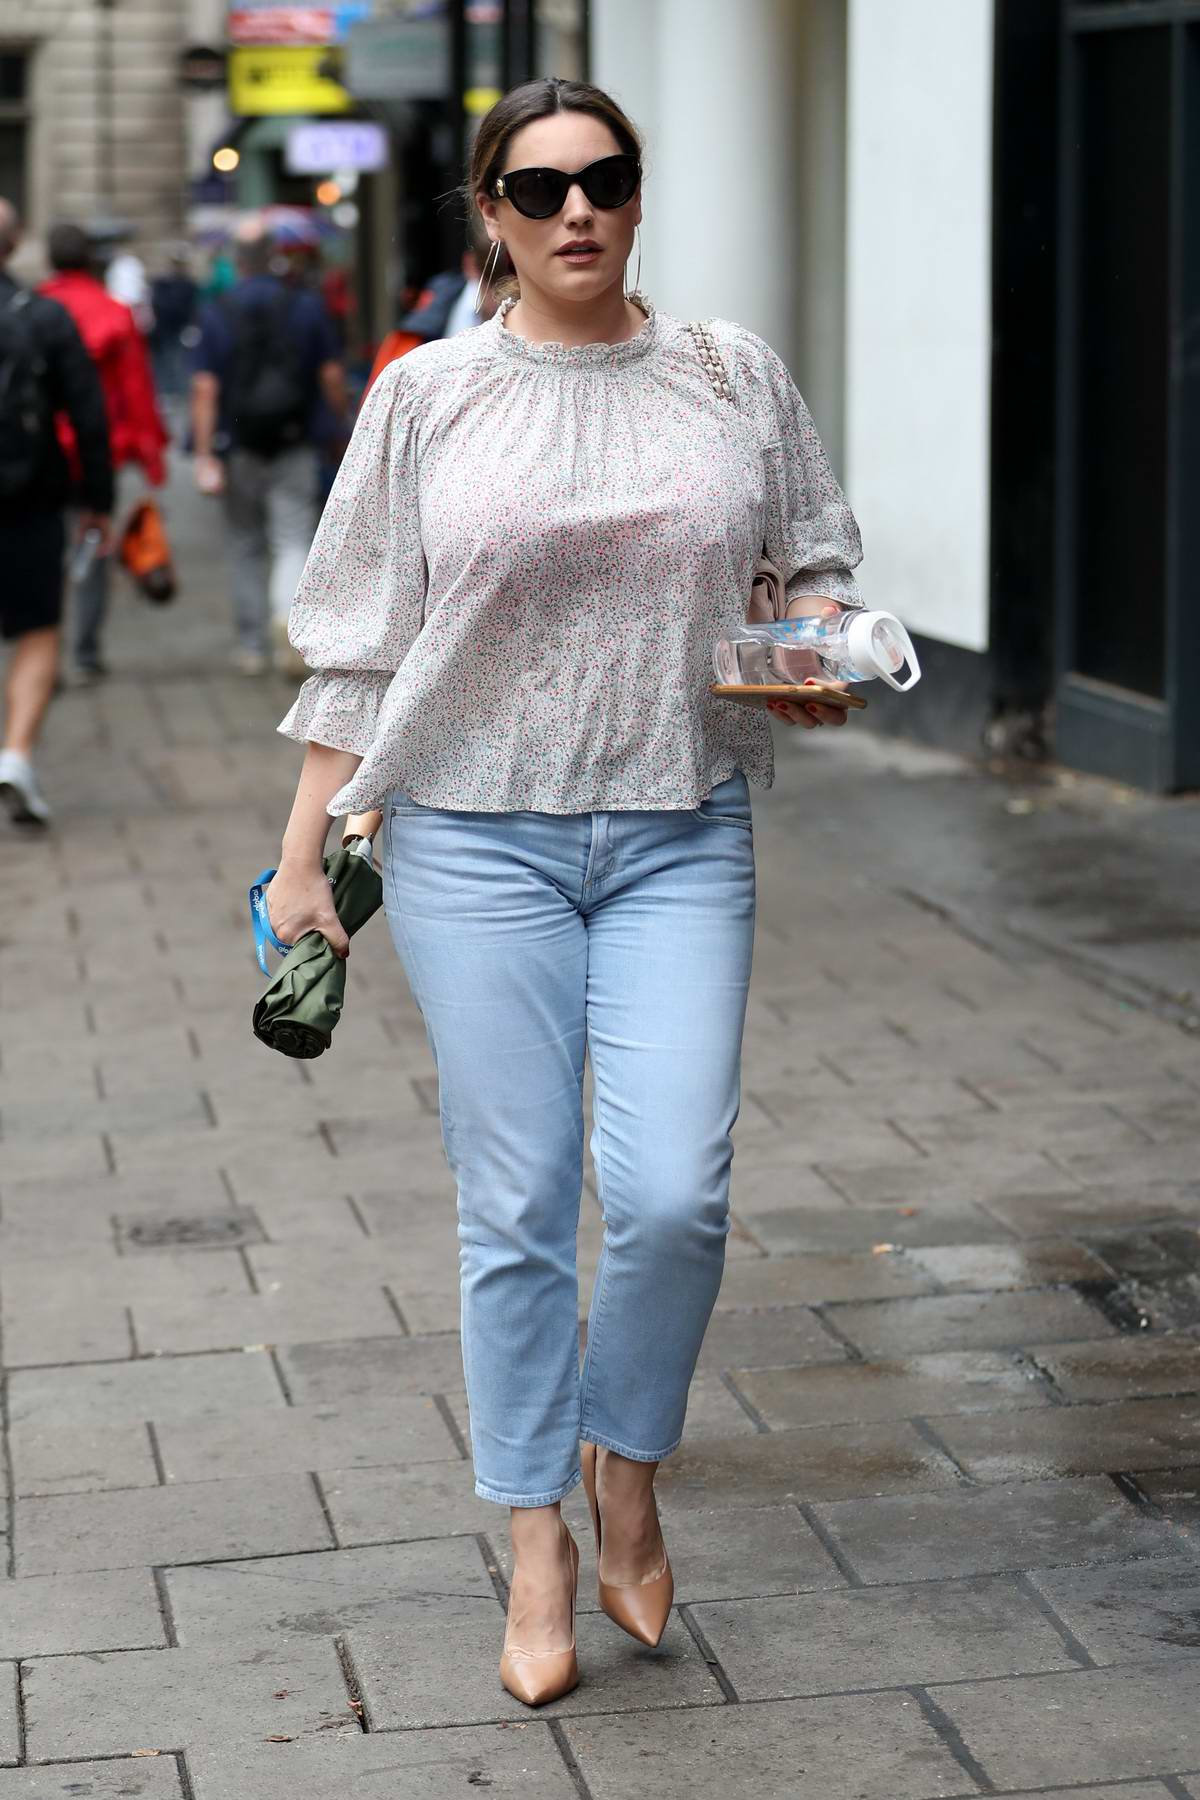 Kelly Brook looks great in a patterned top and jeans while heading to Heart Radio in London, UK